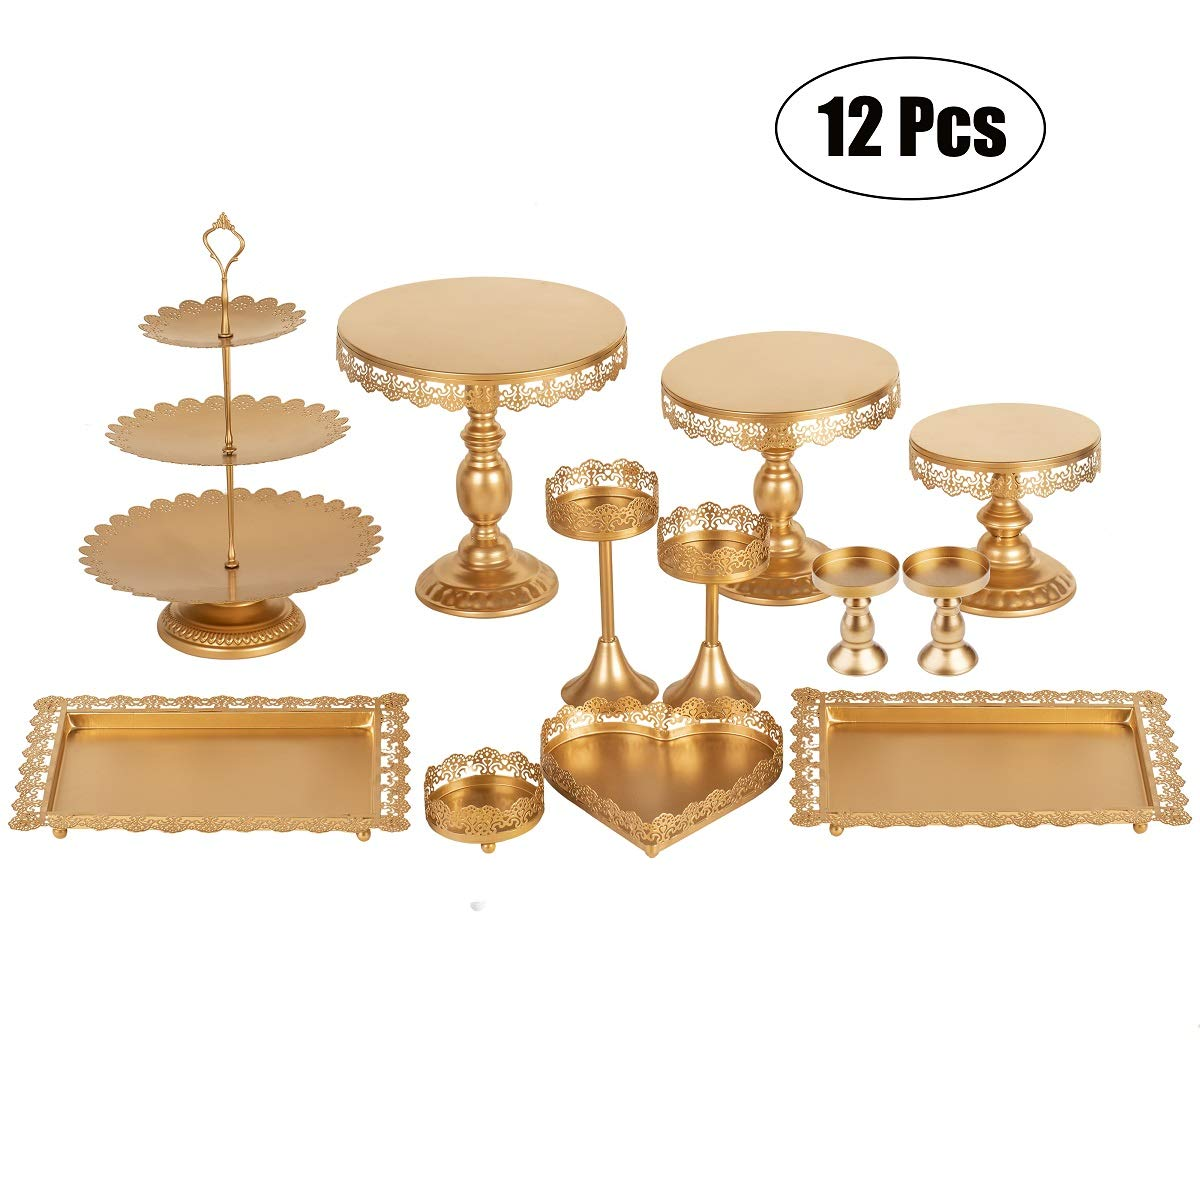 Set of 12 Pieces Golden Cake Stand and Pastry Trays Metal Cupcake Holder Fruits Dessert Display Plate for Baby Shower Wedding Birthday Party Celebration by Gluinor Party